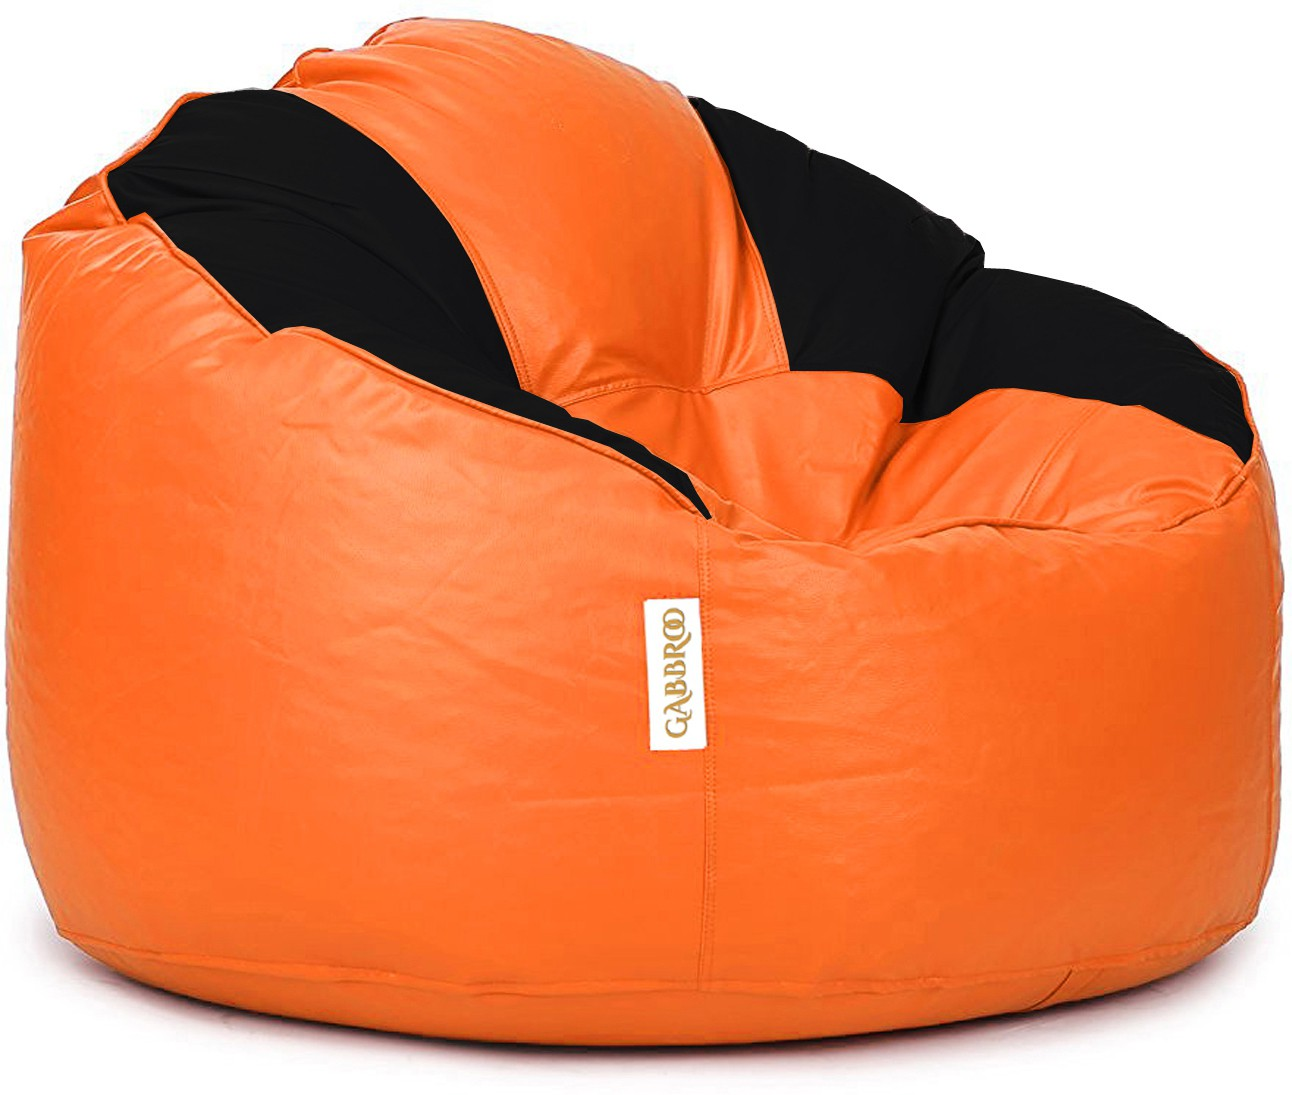 View Gabbroo XXXL Lounger Bean Bag Cover(Orange, Black) Furniture (StyleCraft)